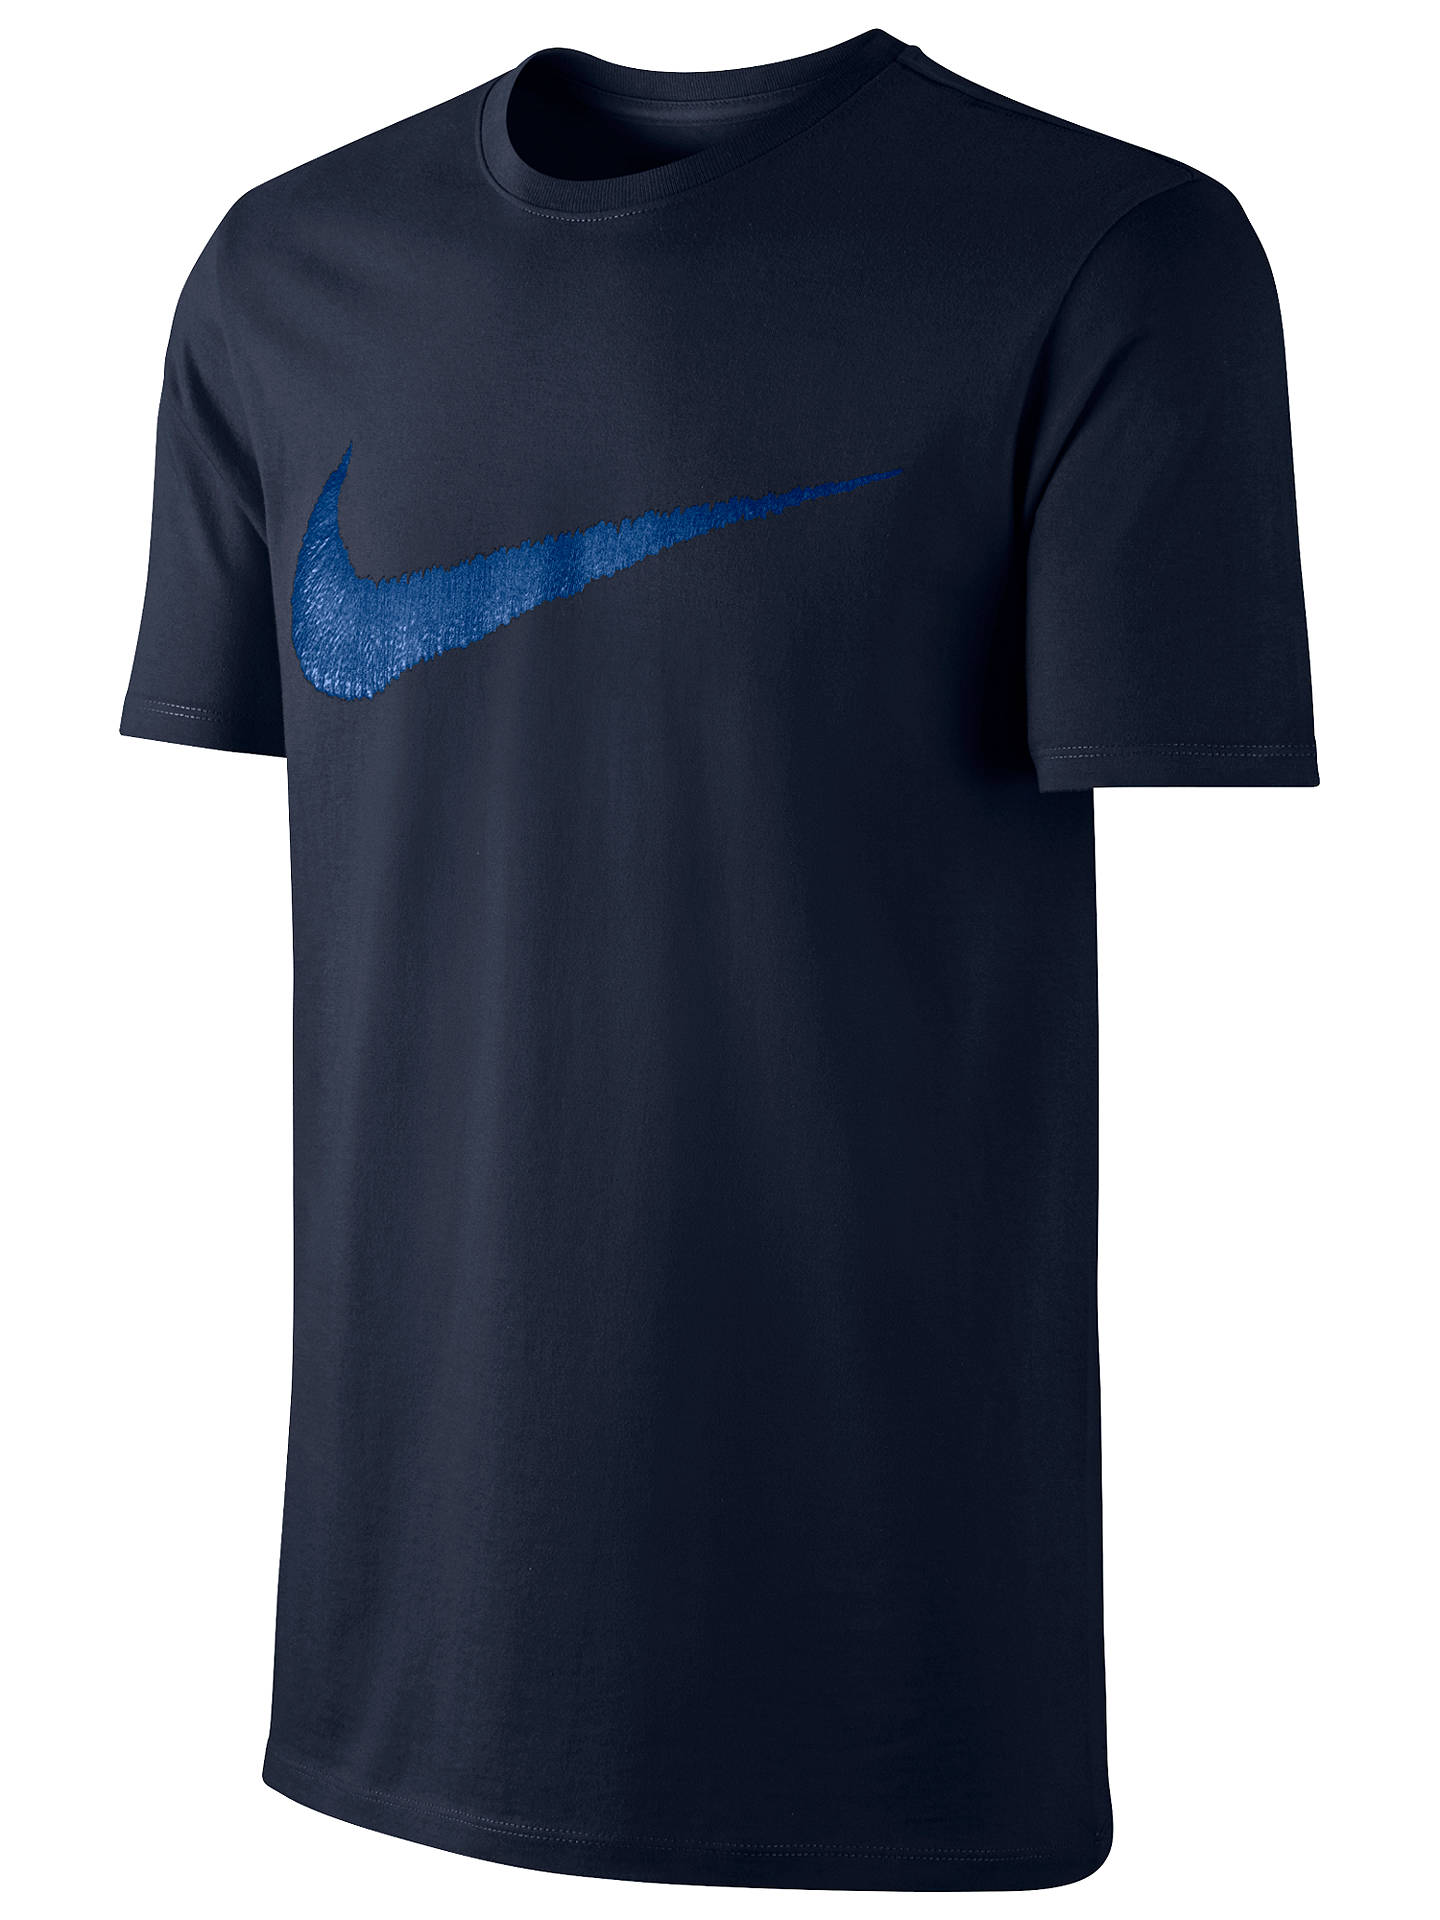 4b6c15383 Buy Nike Sportswear Swoosh Cotton T-Shirt, Blue, M Online at johnlewis.